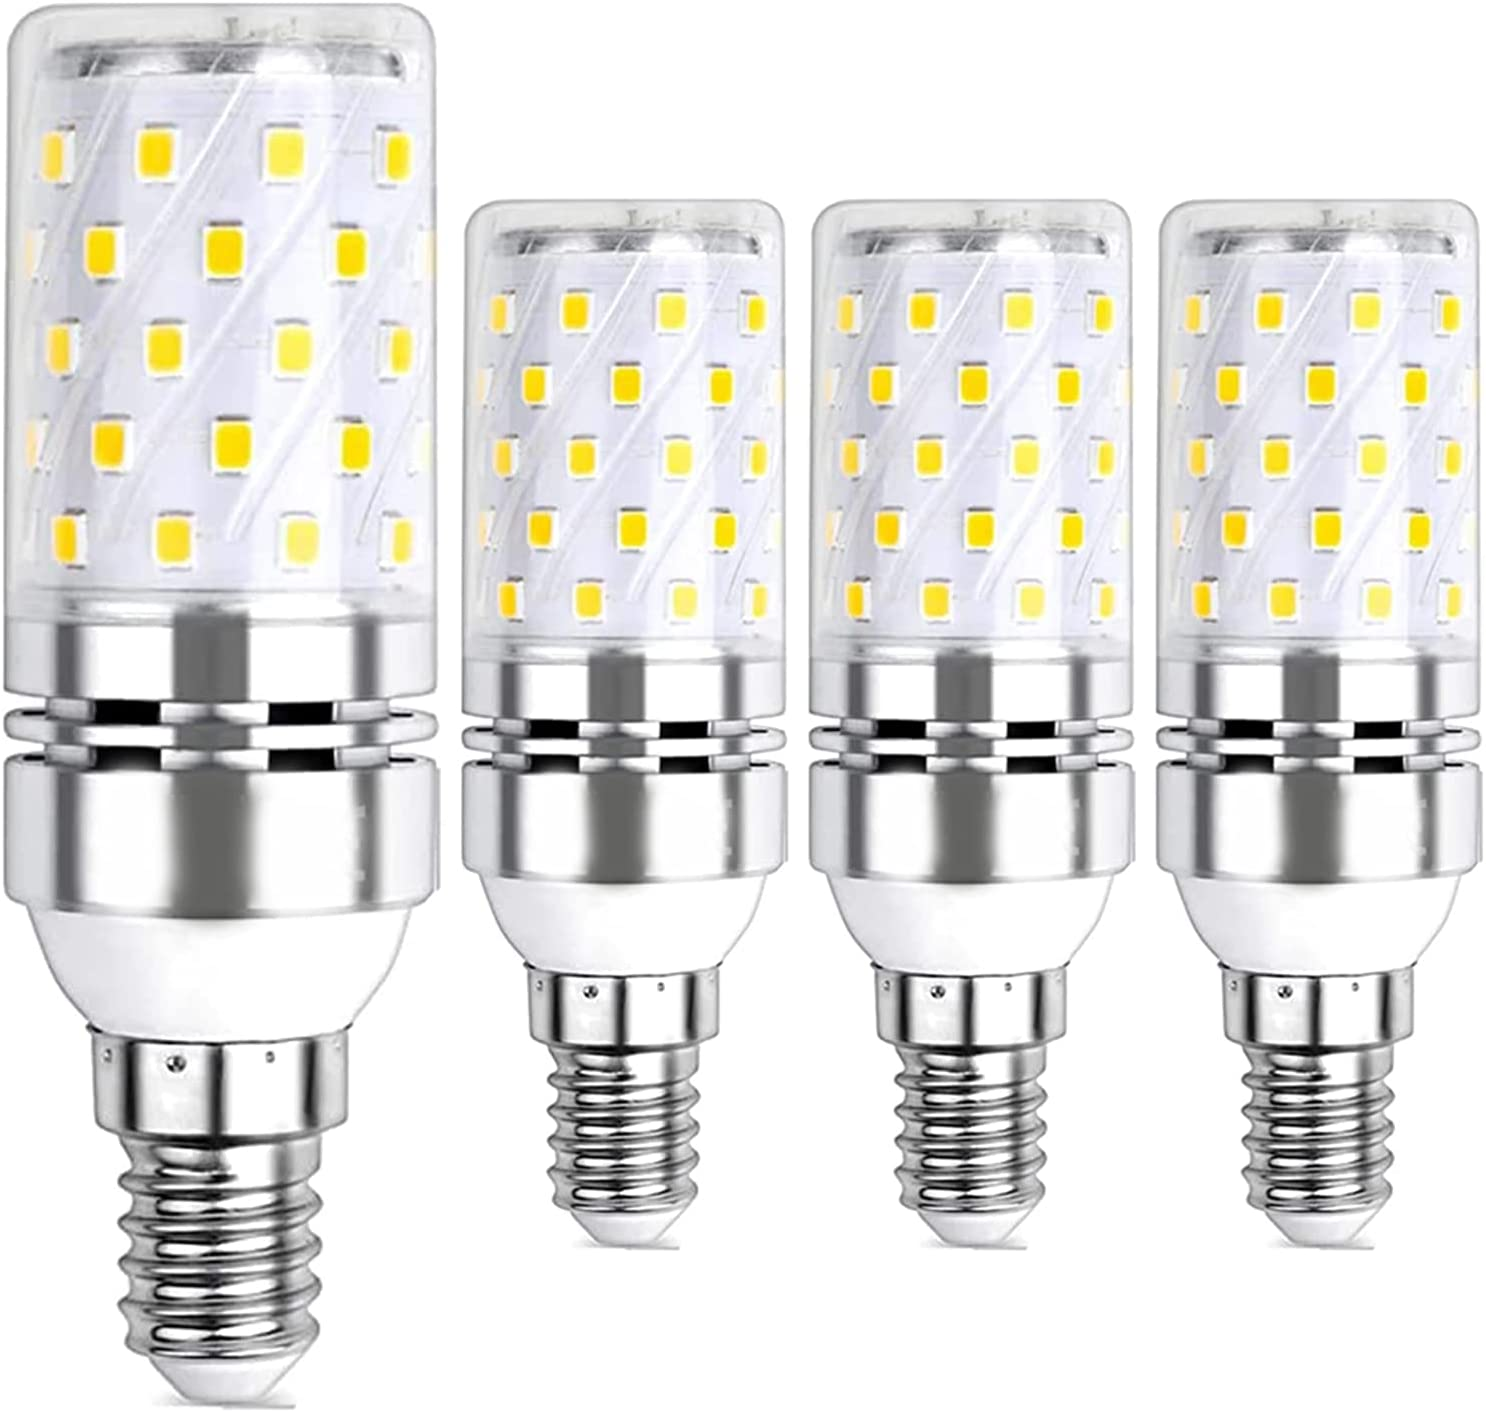 JZlamp E14 LED Corn Bulb 2021new shipping free shipping Incandescent New popularity 12W Equivalent 1200W